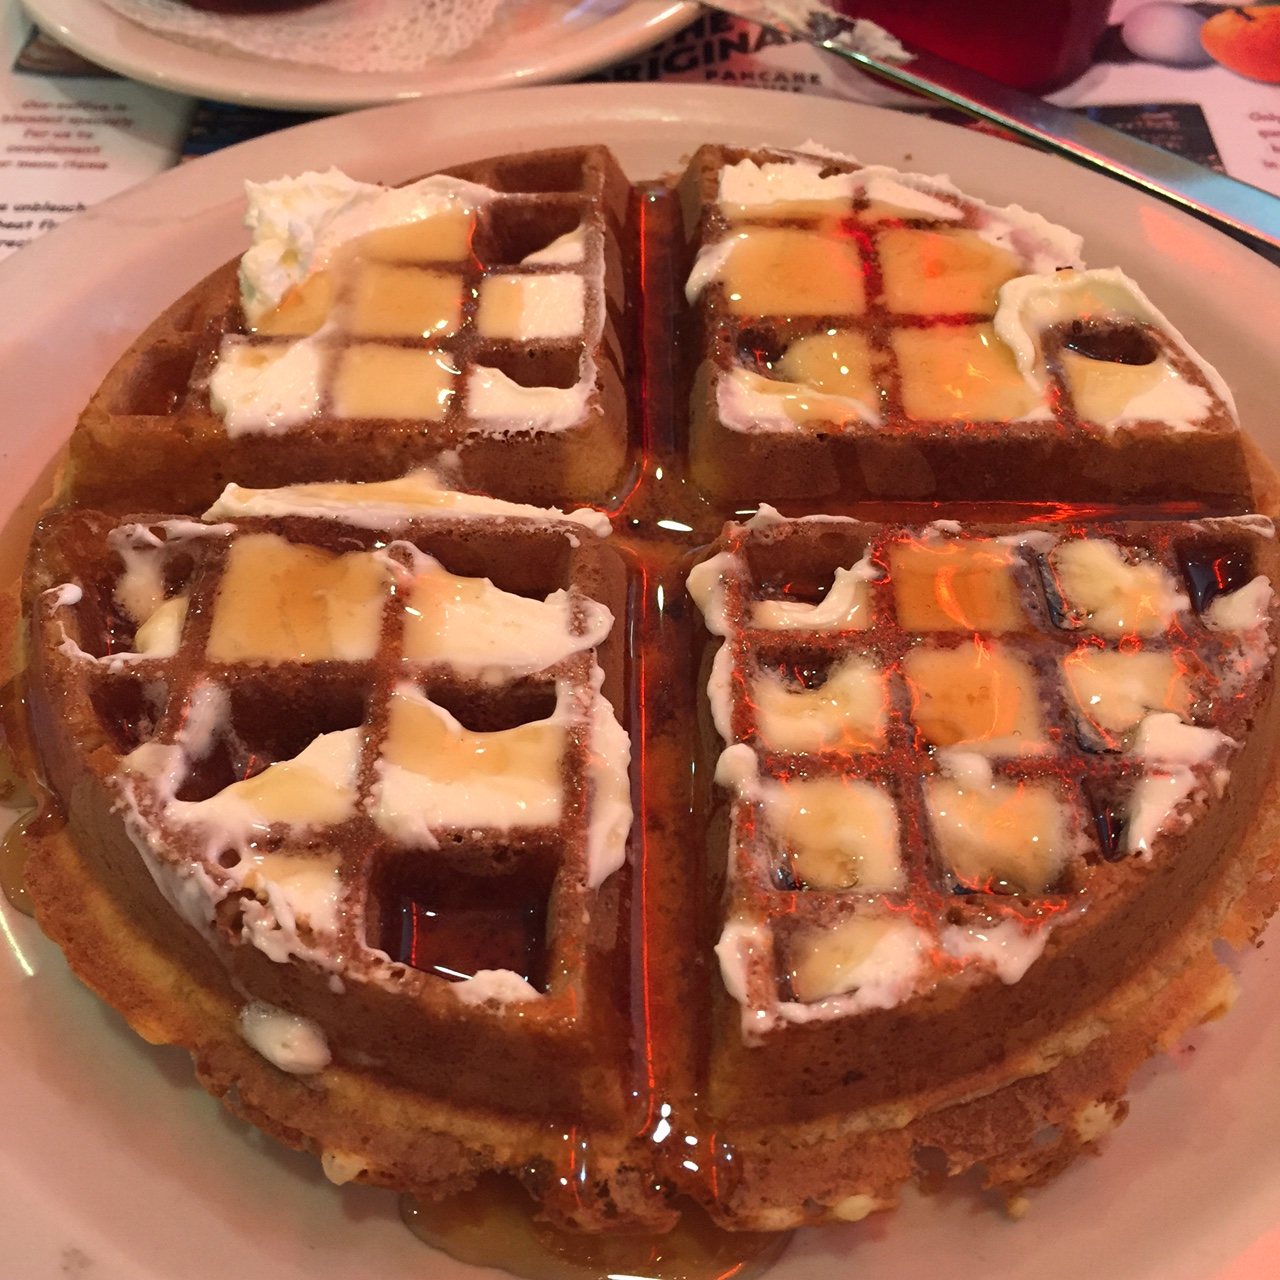 The Belgian waffle at the Delray Beach location